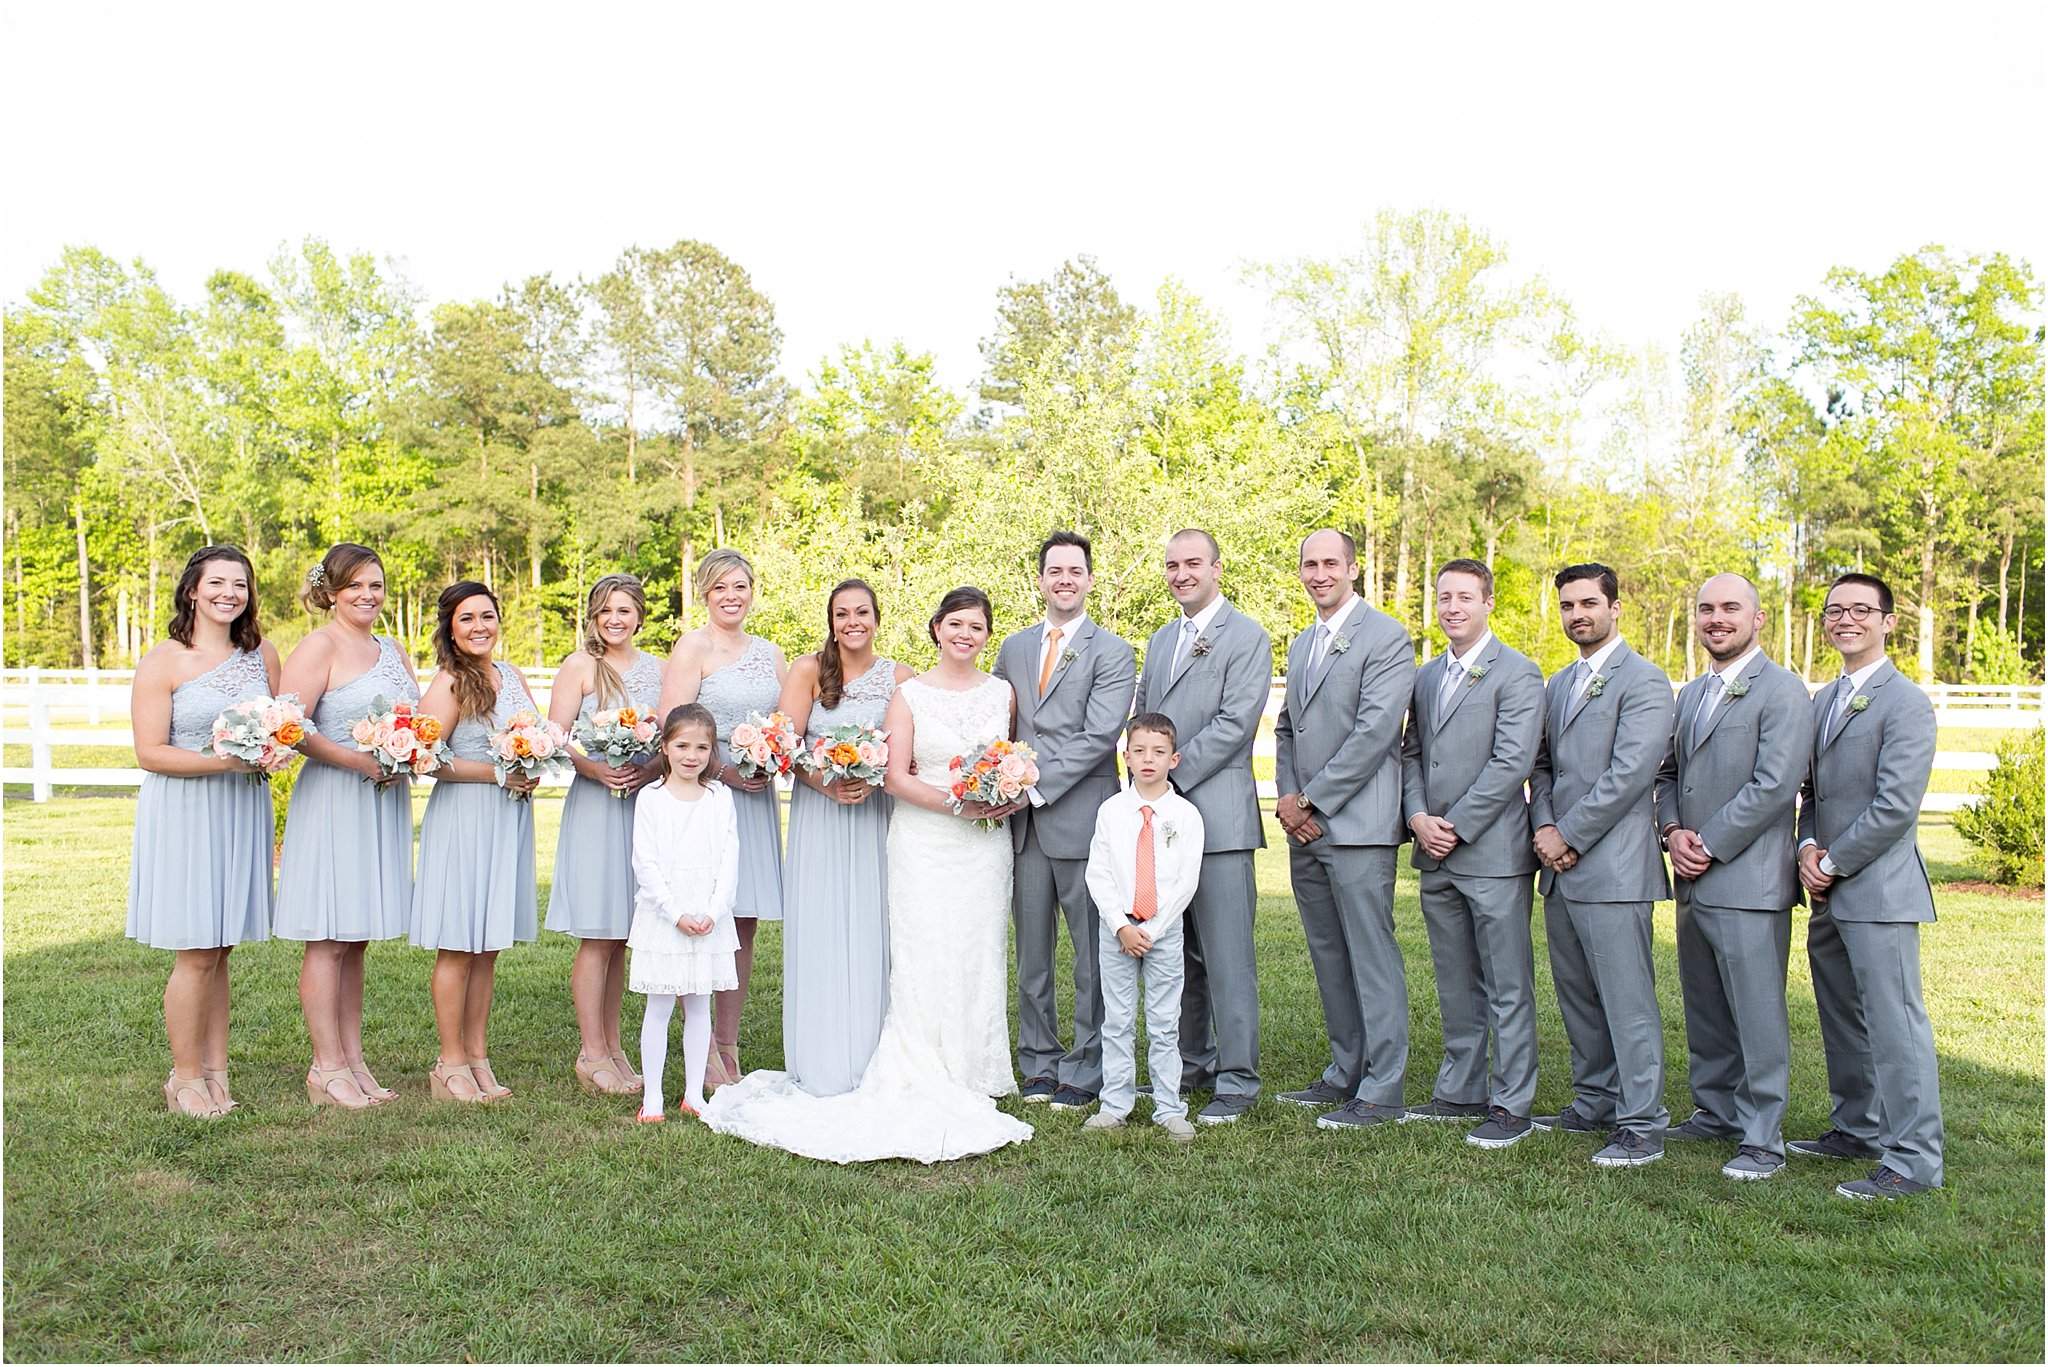 jessica_ryan_photography_holly_ridge_manor_wedding_roost_flowers_jamie_leigh_events_dhalia_edwards_candid_vibrant_wedding_colors_1305